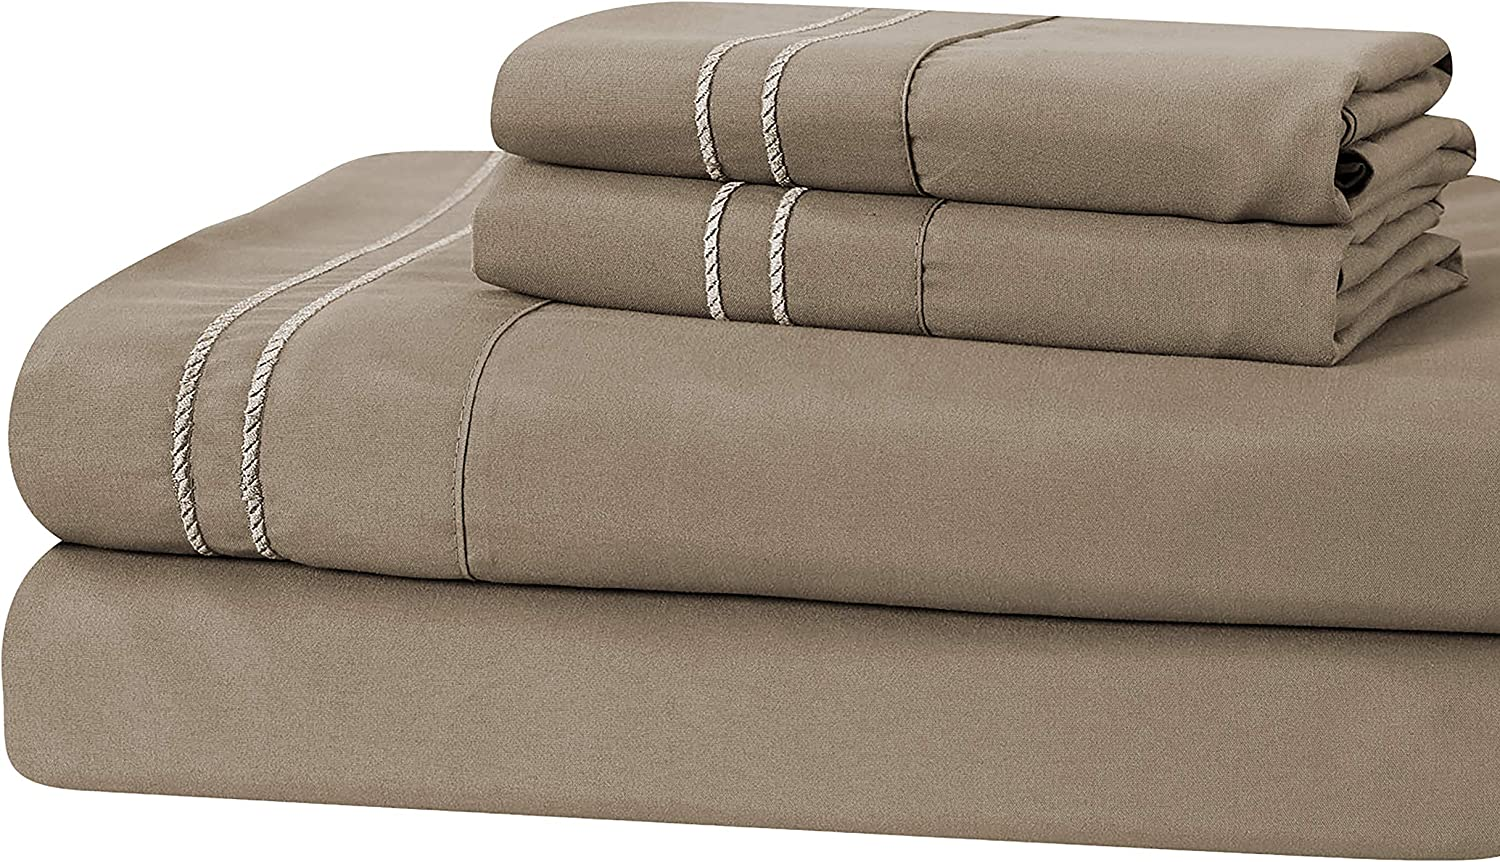 Manor Ridge Luxury 100 GSM Brushed Microfiber Extra Soft Hypoallergenic 3-Piece Double Marrow Hem Sheet Set, Twin, Taupe